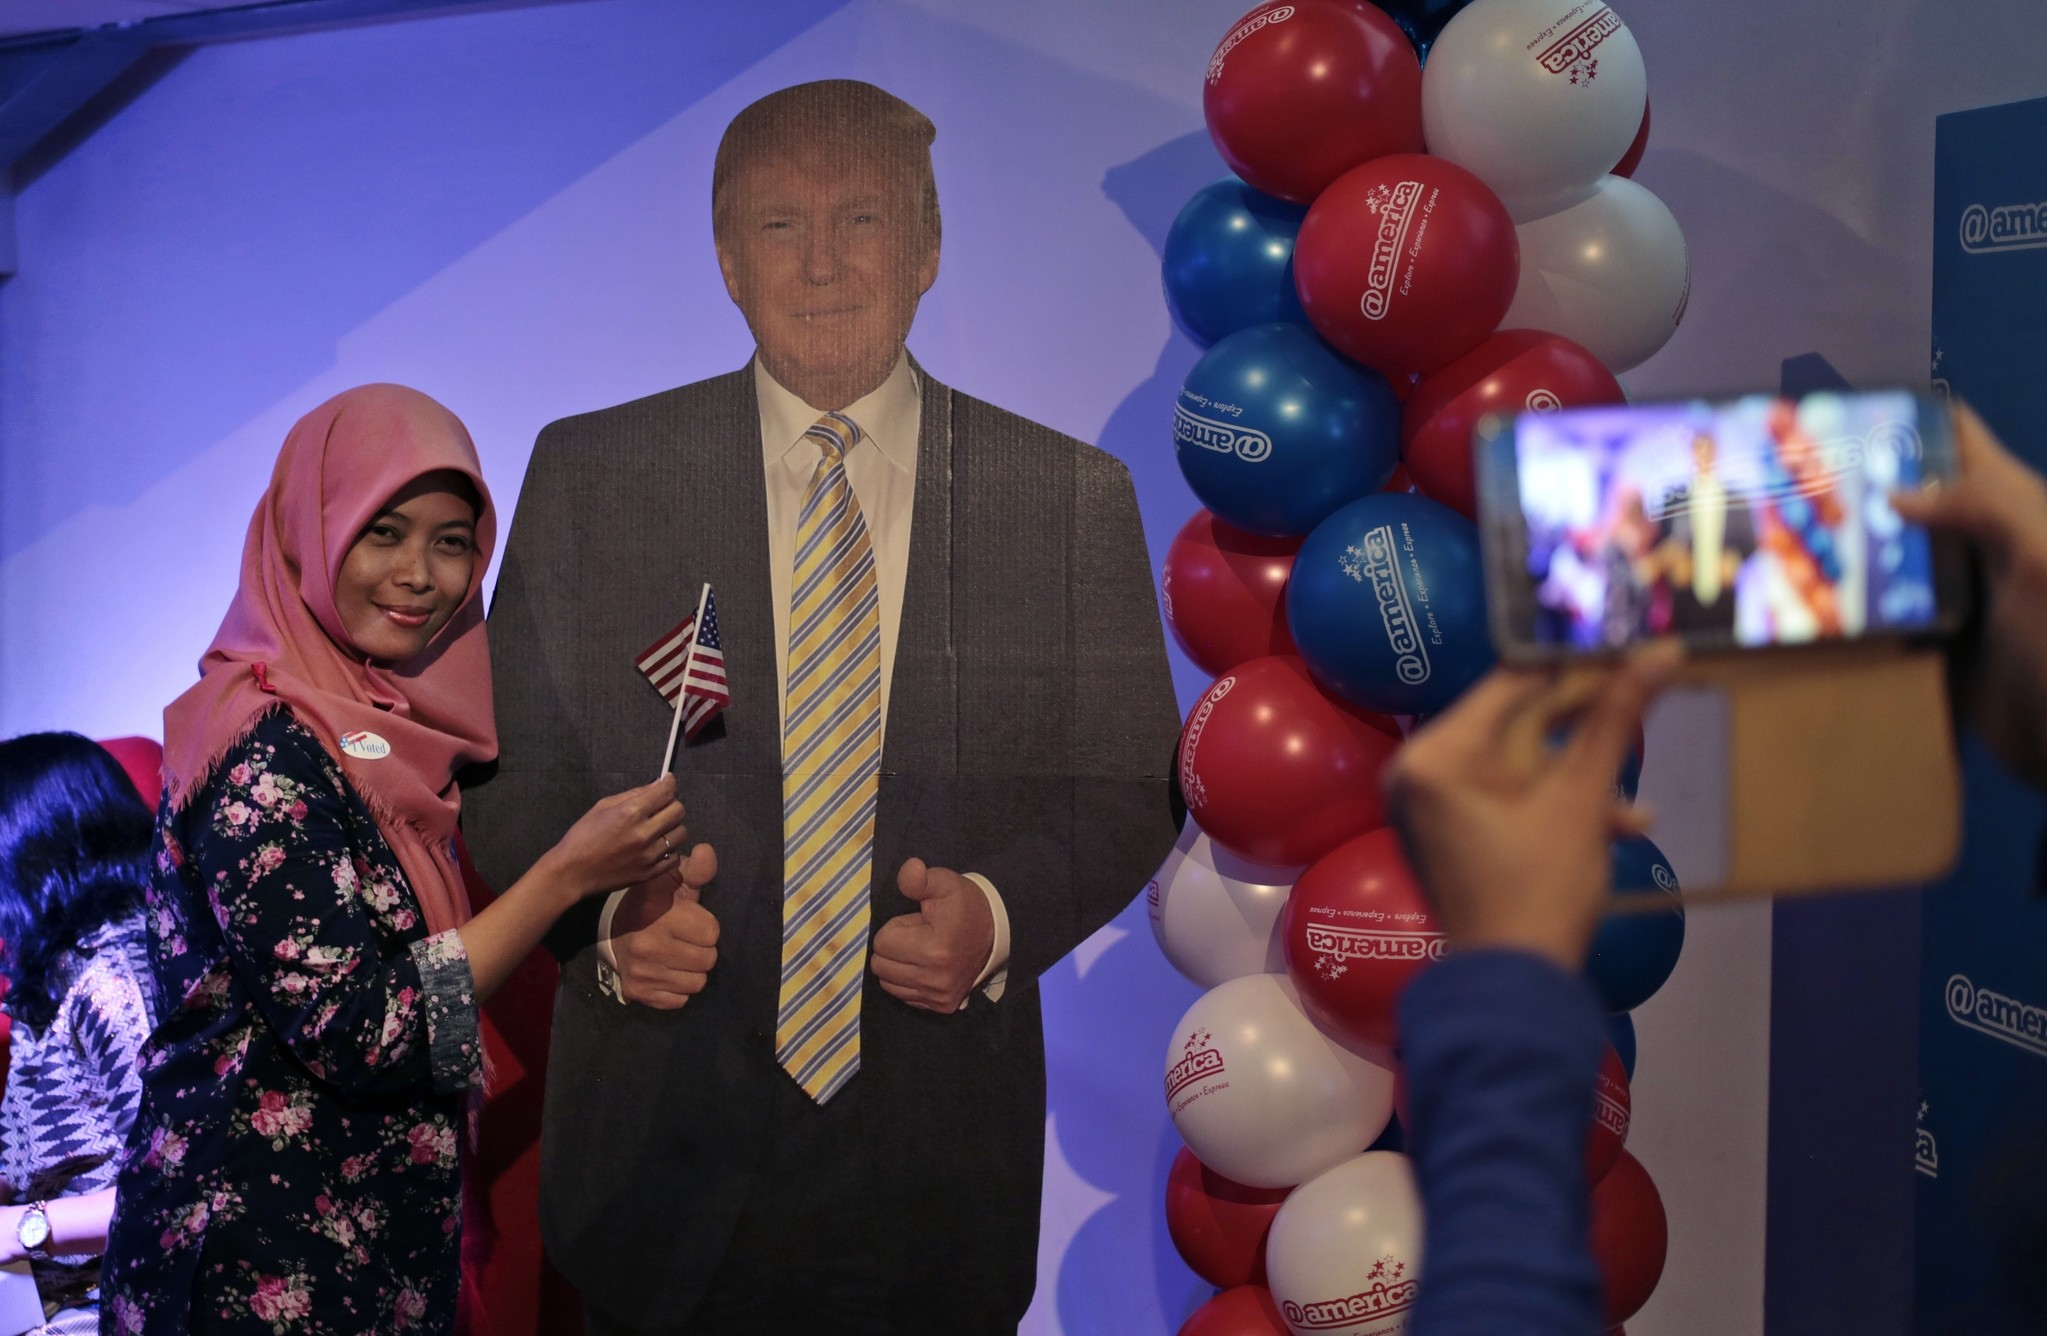 A Muslim woman has her photo taken with the cutout of Trump during an election watch event at U.S. embassy's cultural center